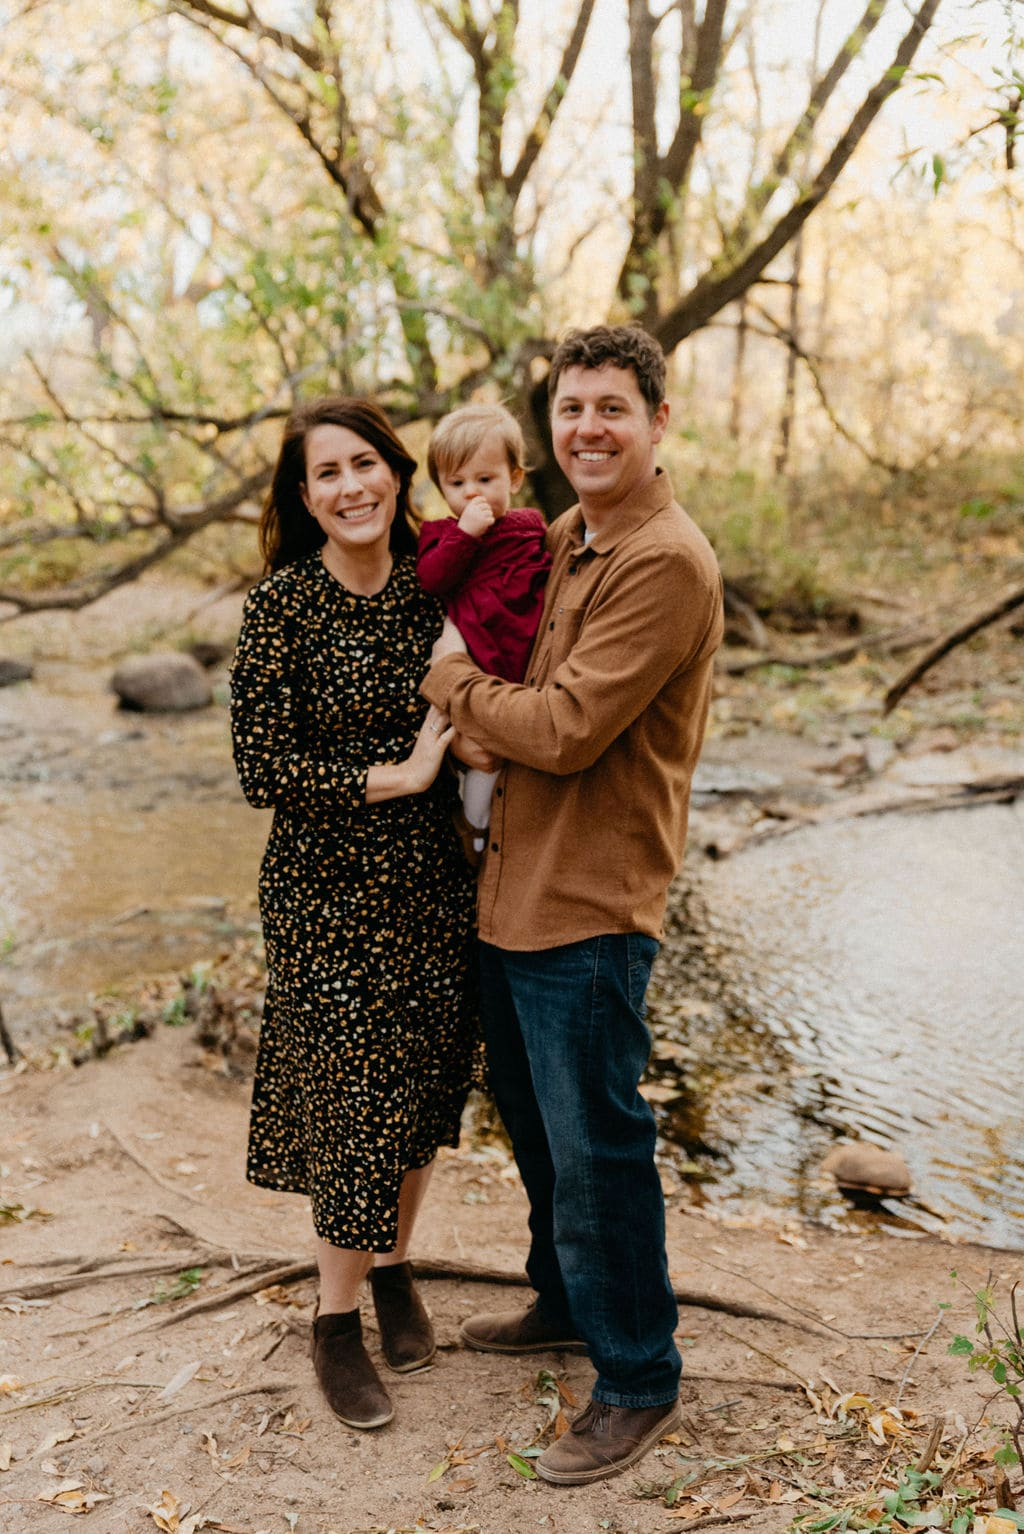 Boulder Family session at sunrise near a creek in boulder